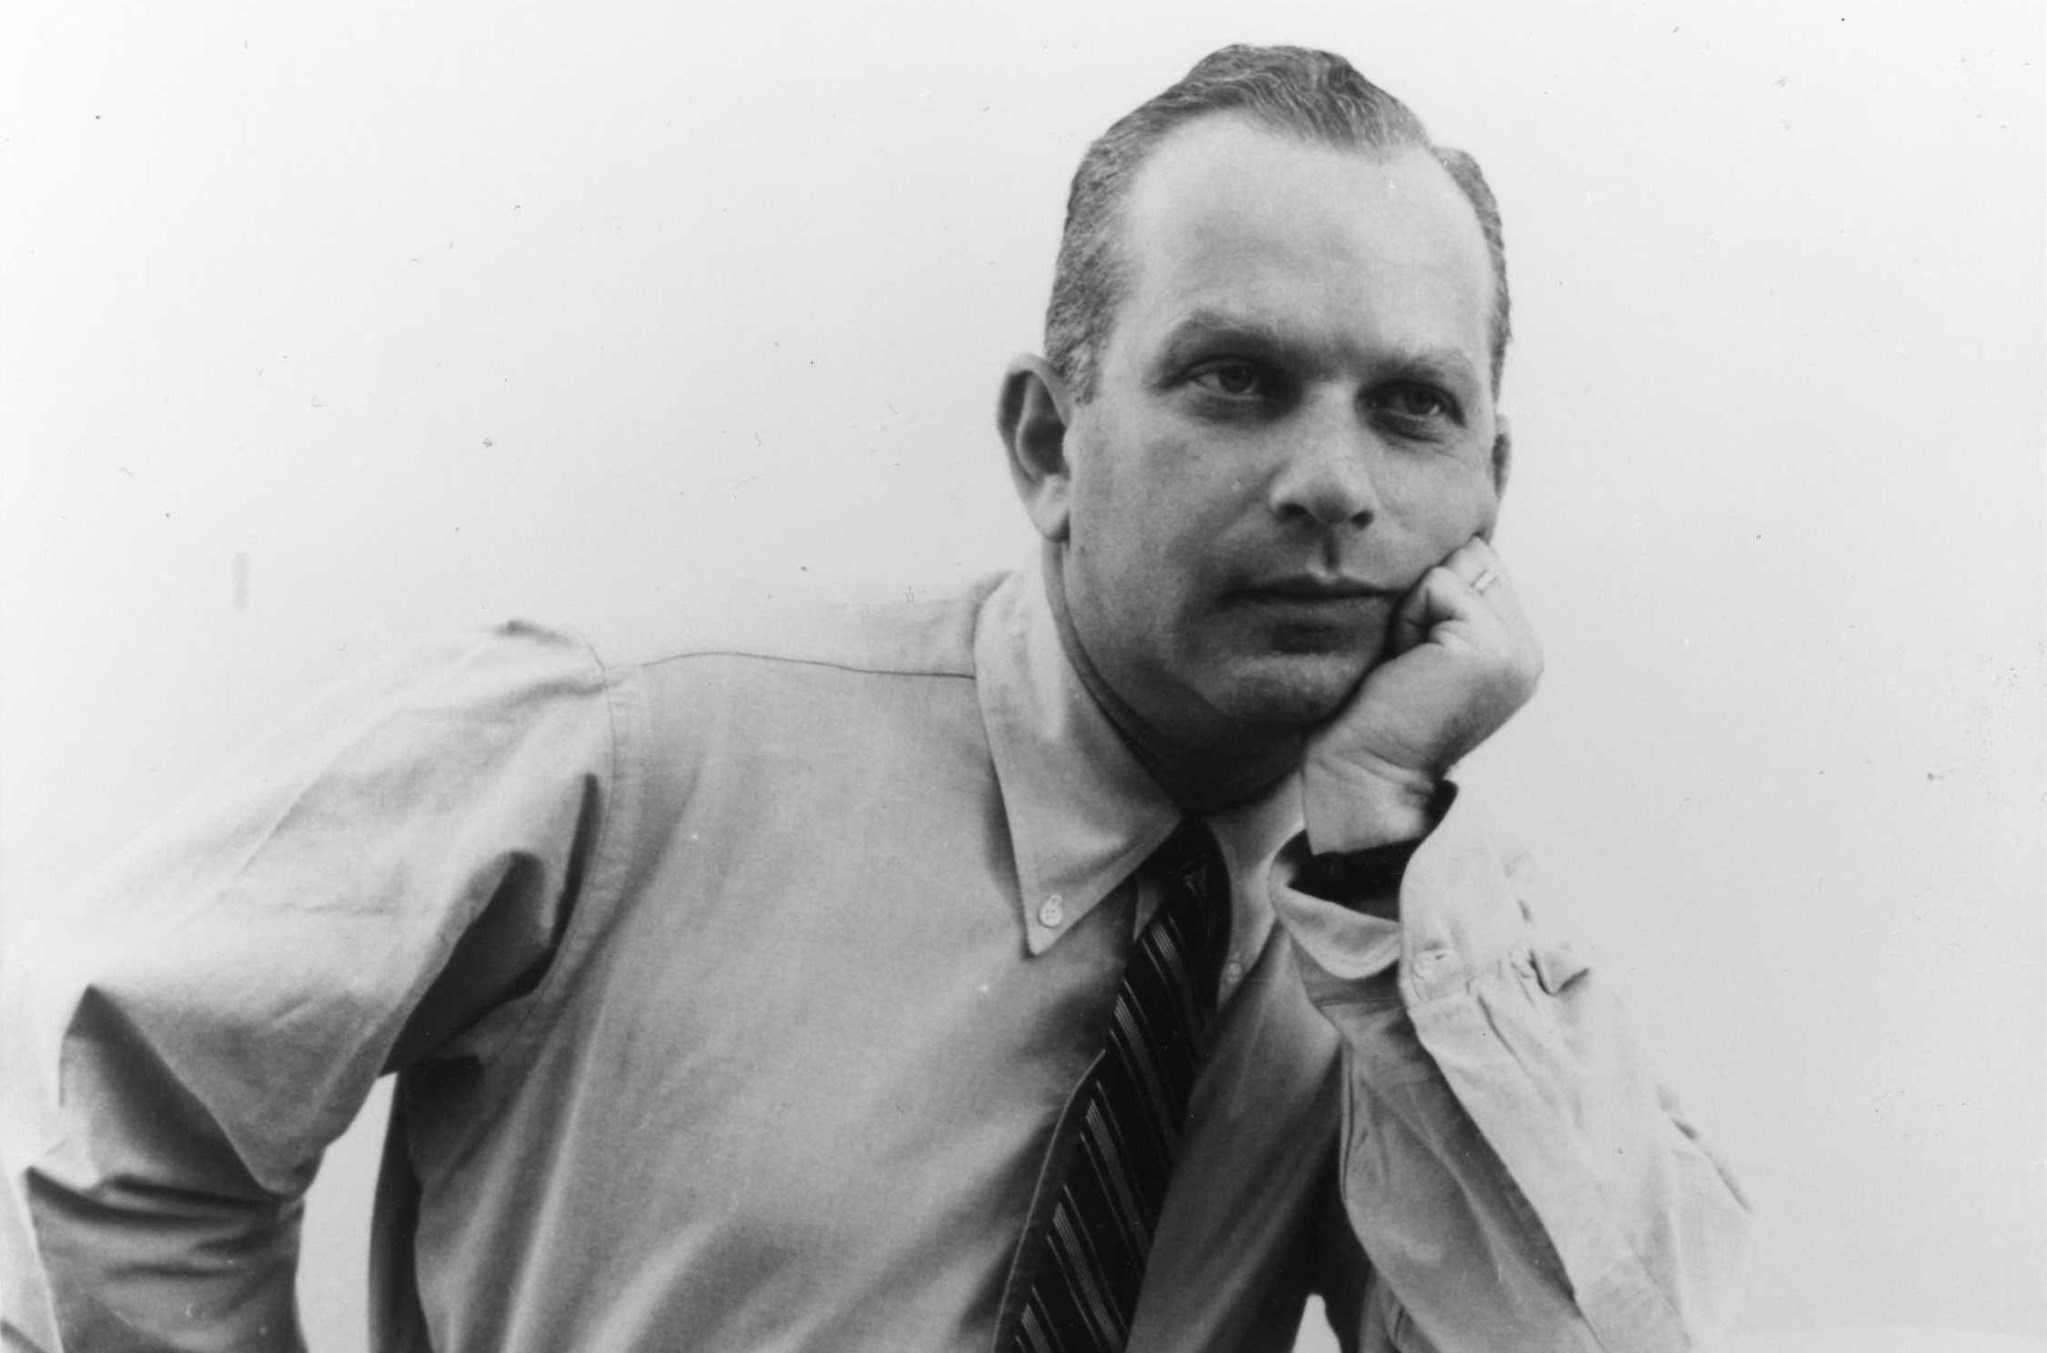 A legendary letter: Bill Bernbach's 1940s plea for creativity